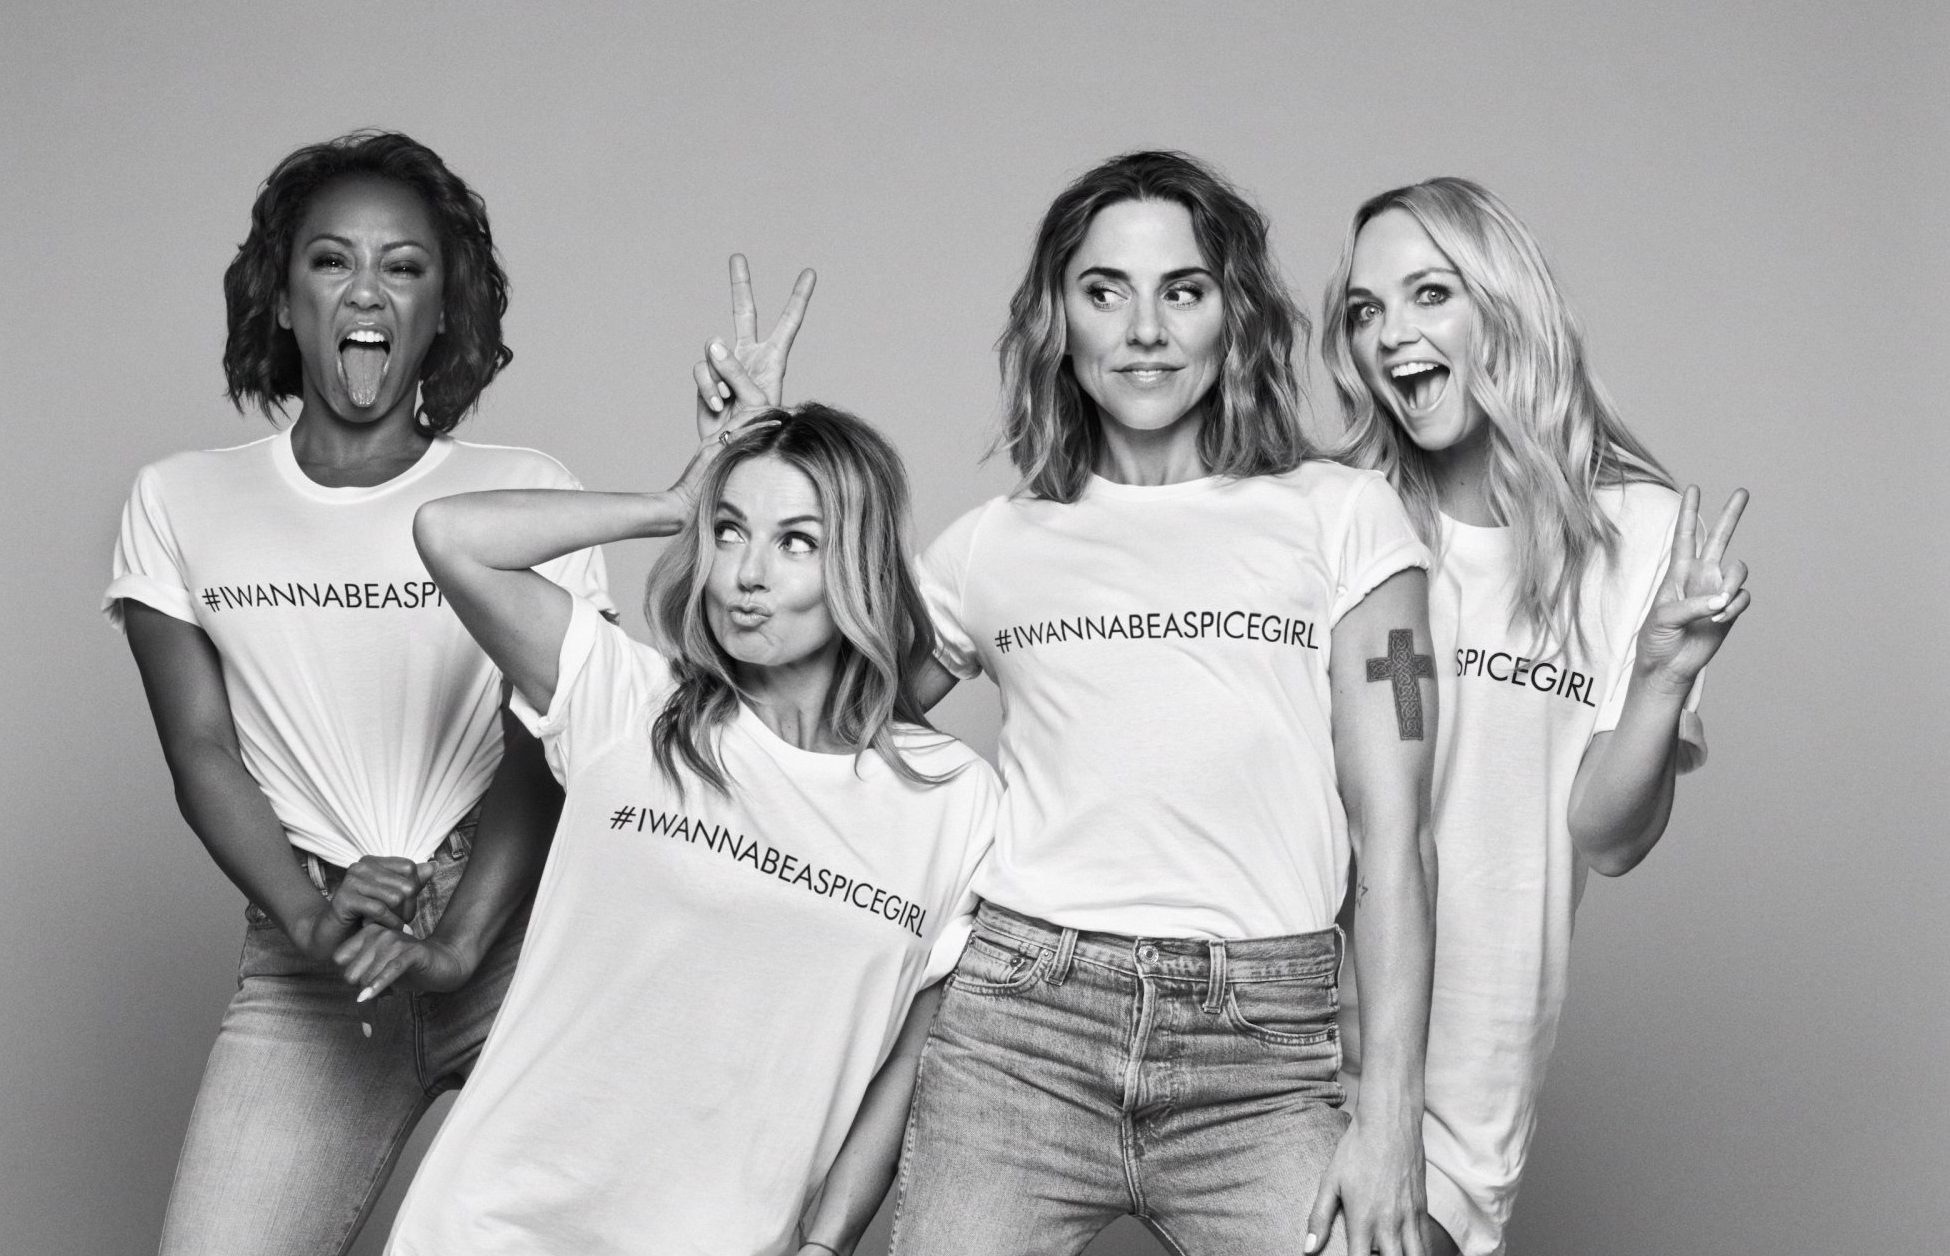 Spice Girls take girl power to the max as they support Gender Justice for Comic Relief